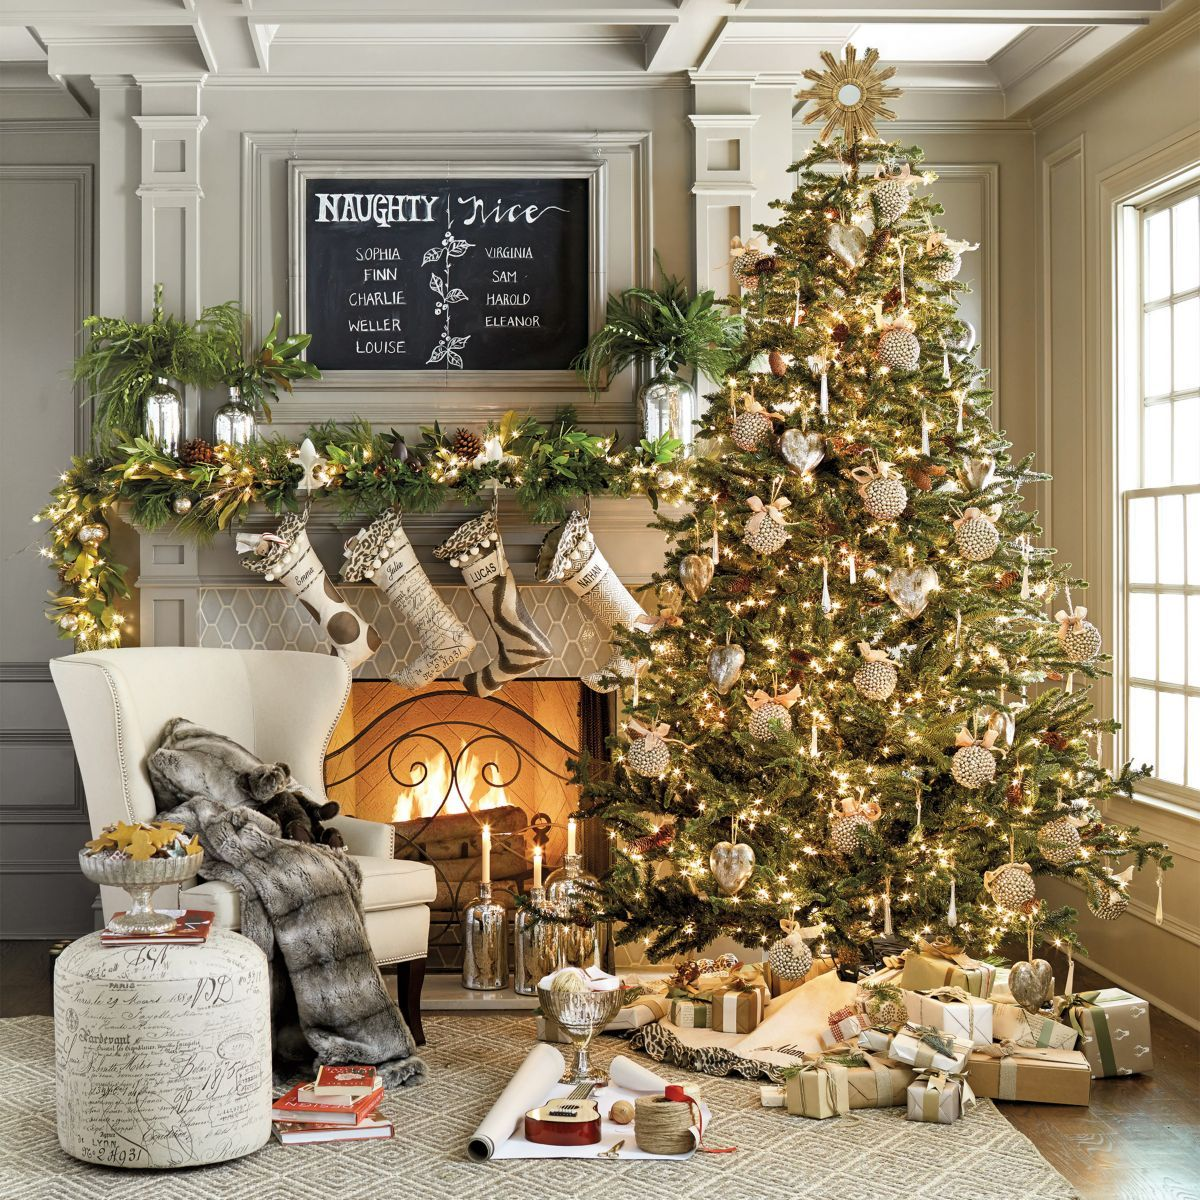 love this christmas scene! ballard designs is a favorite for me